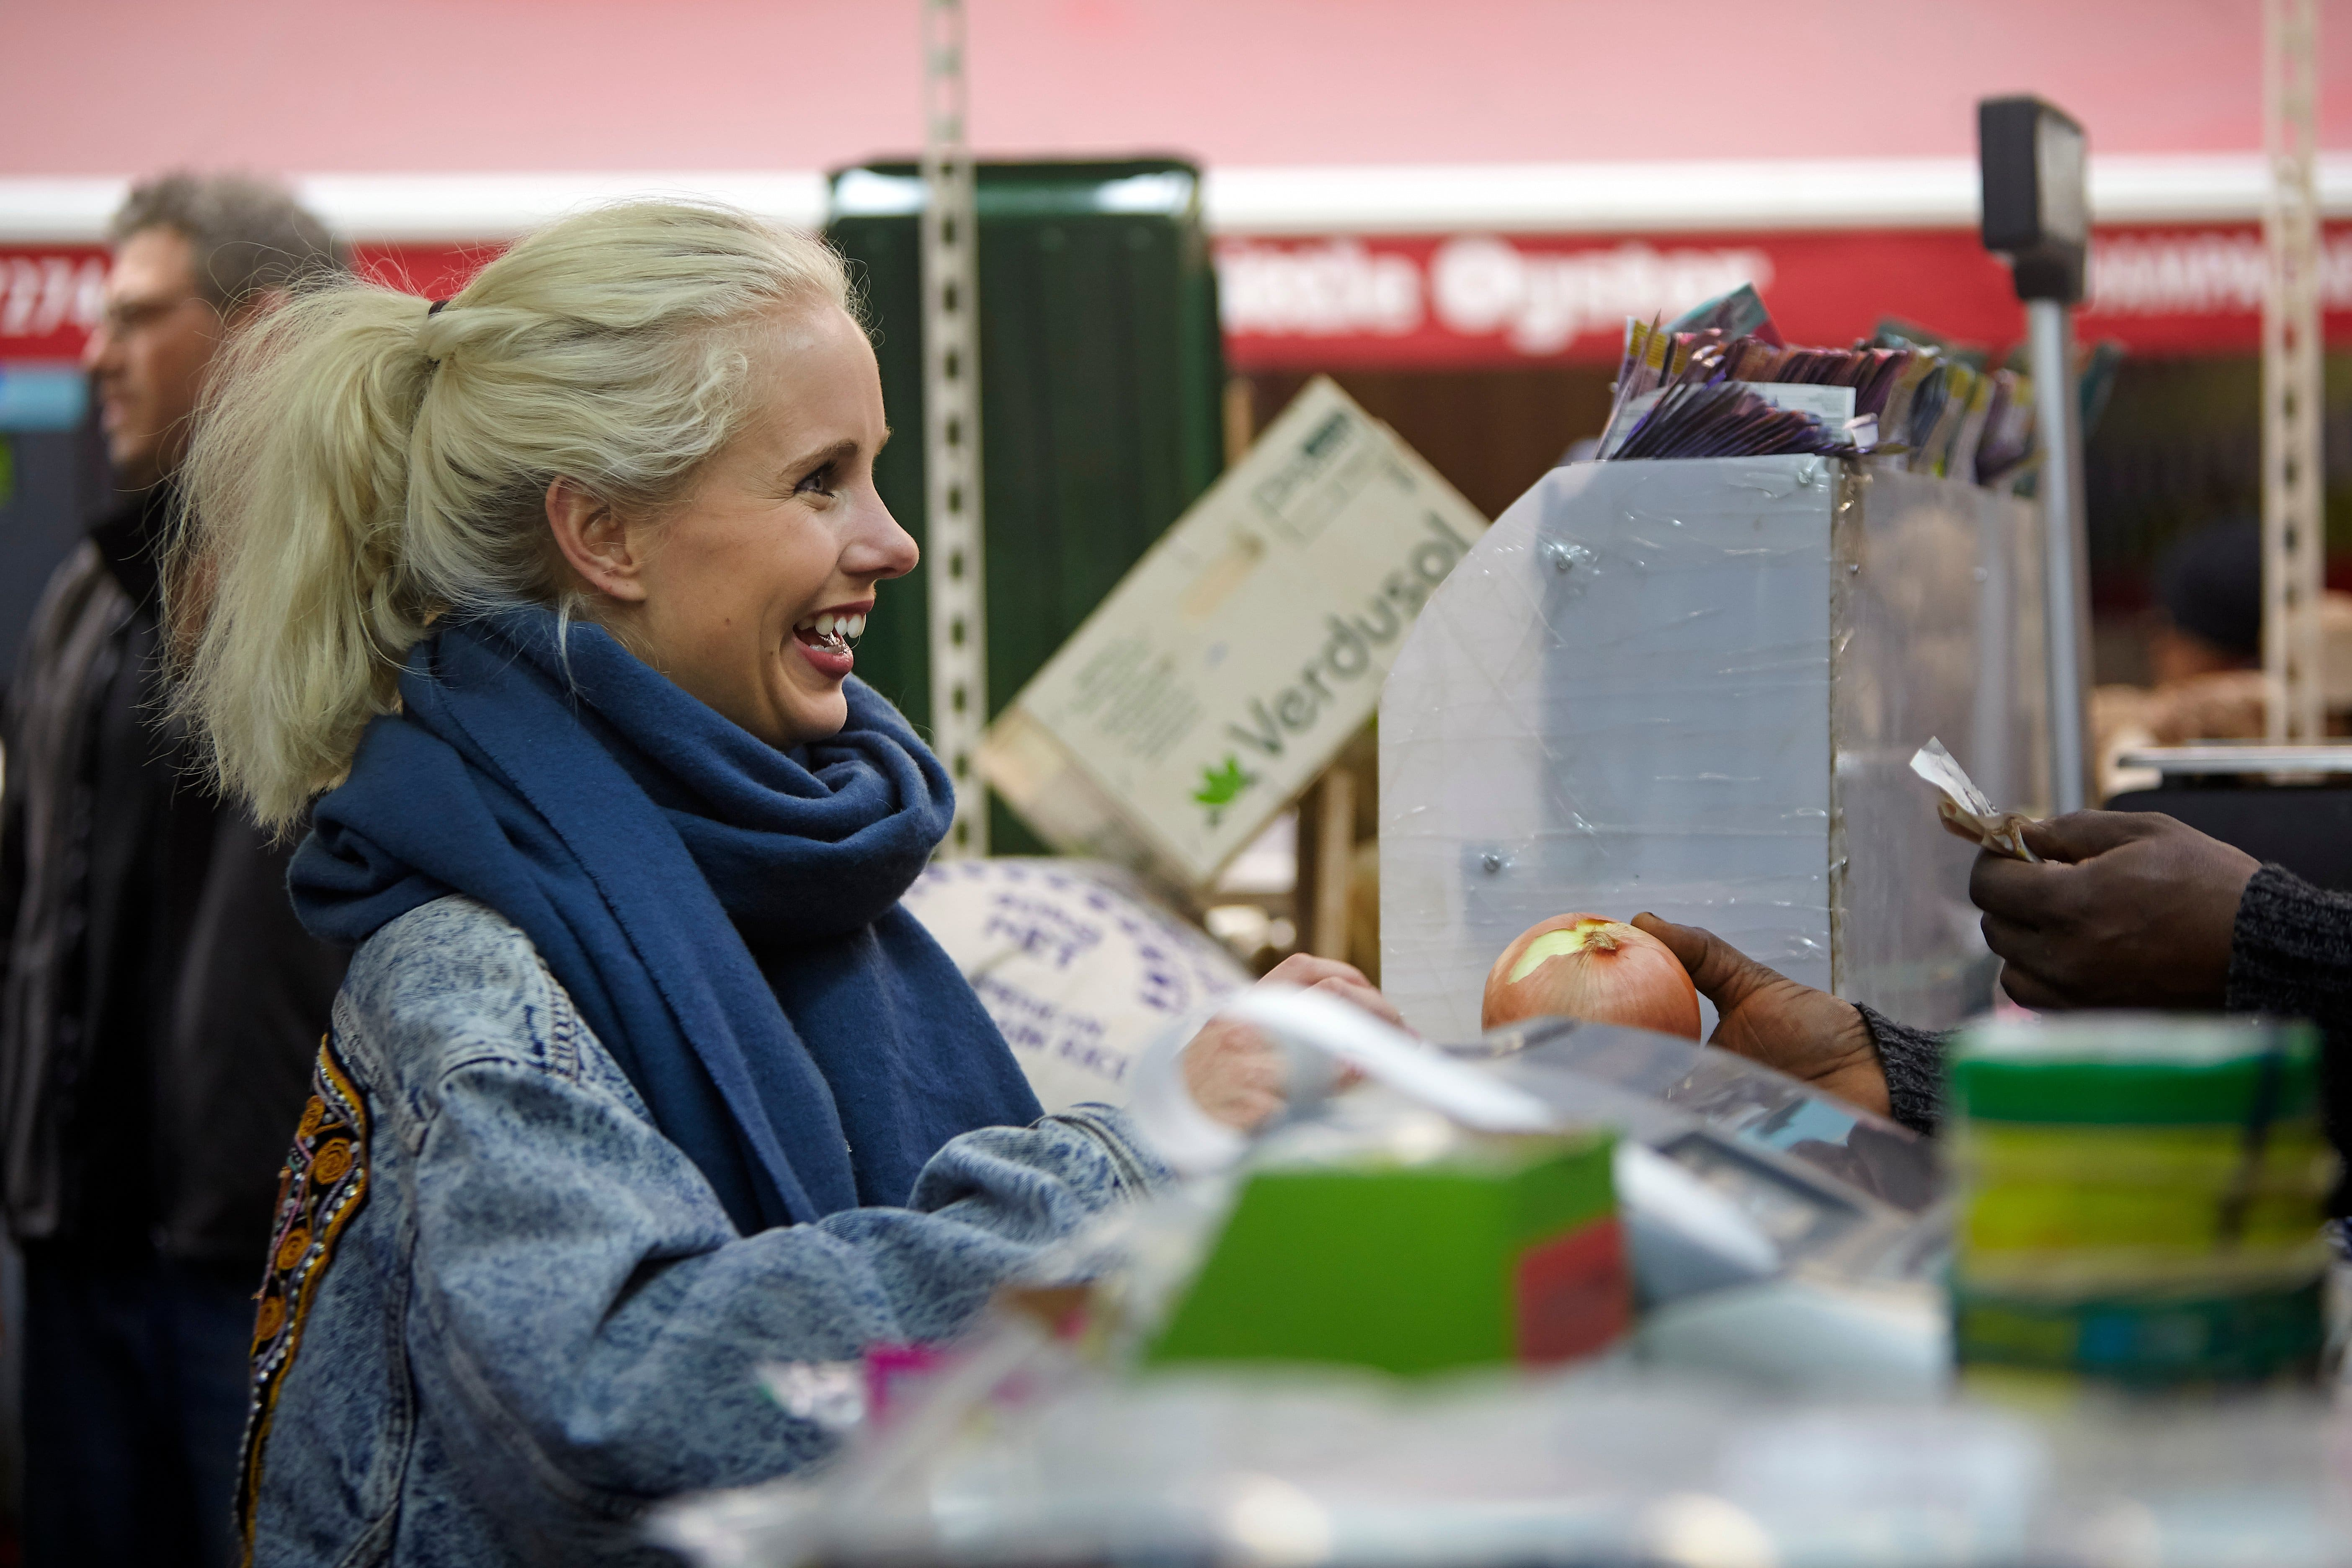 Sigrid Vik buying groceries at Brixton Market